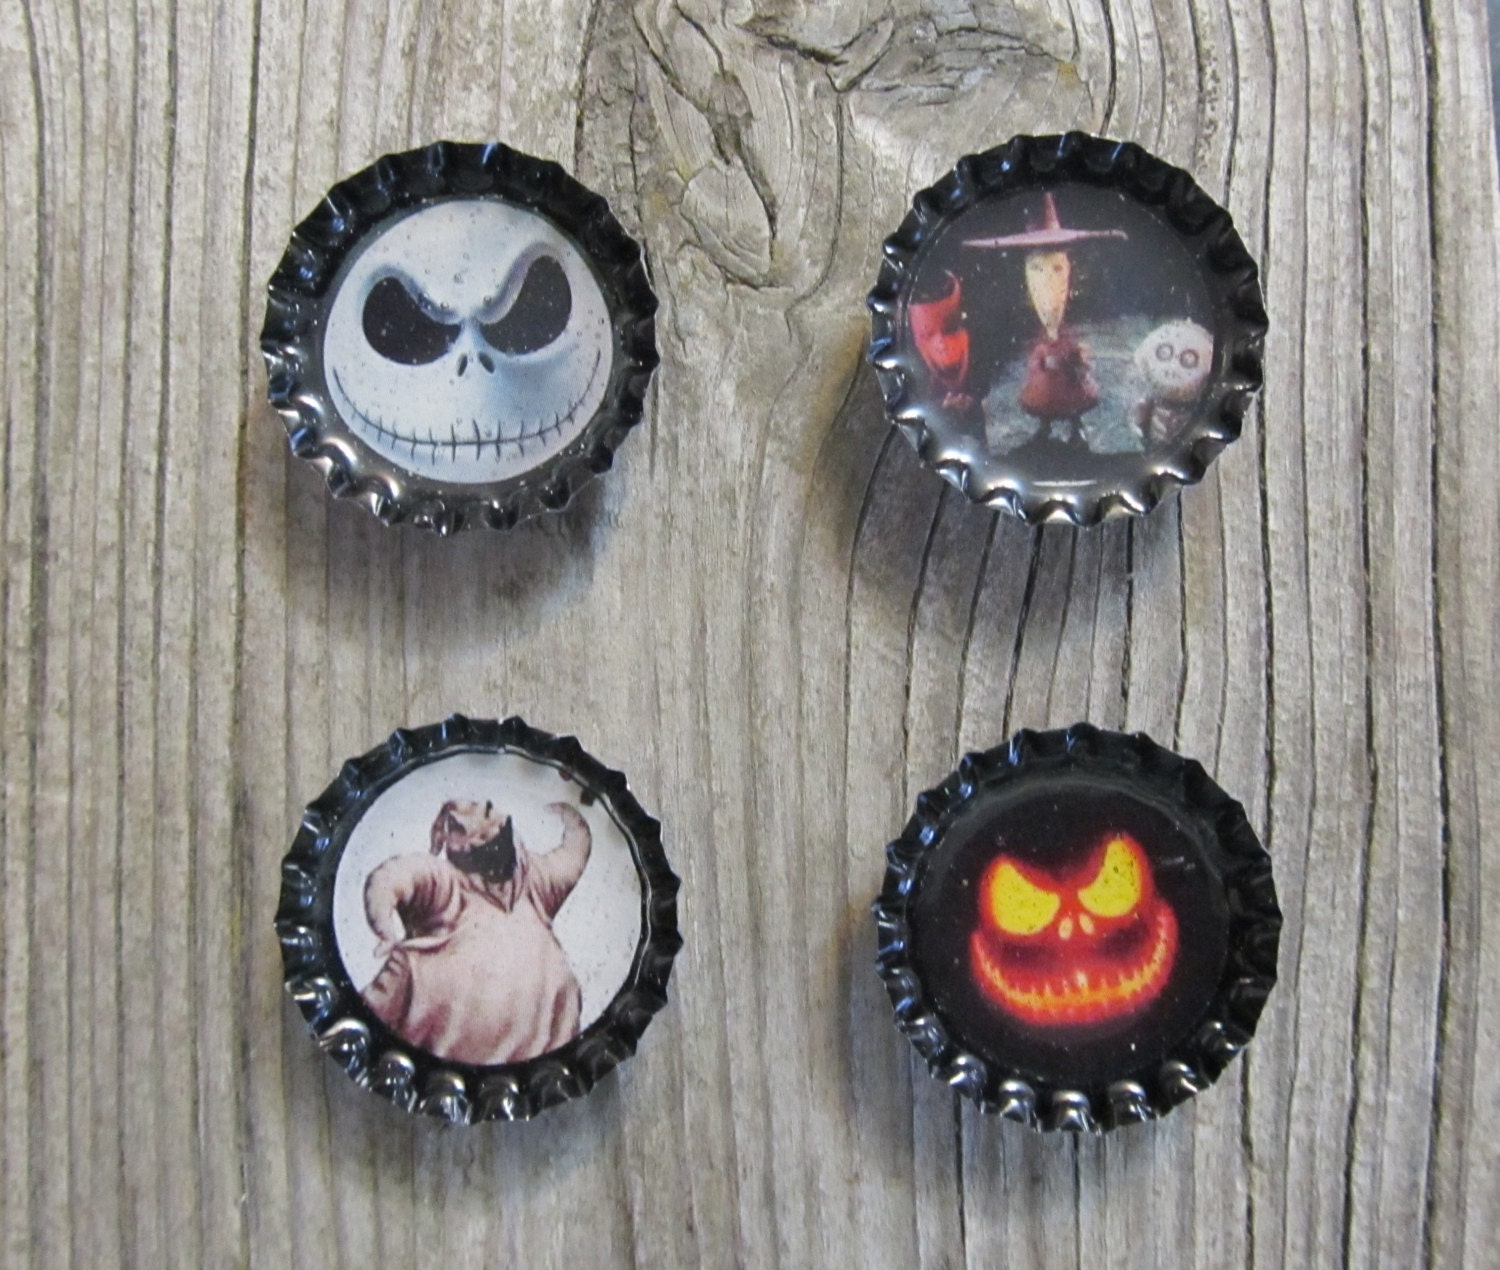 Cool Nightmare Before Christmas Gifts: Nightmare Before Christmas Bottle Cap Magnets Gift By